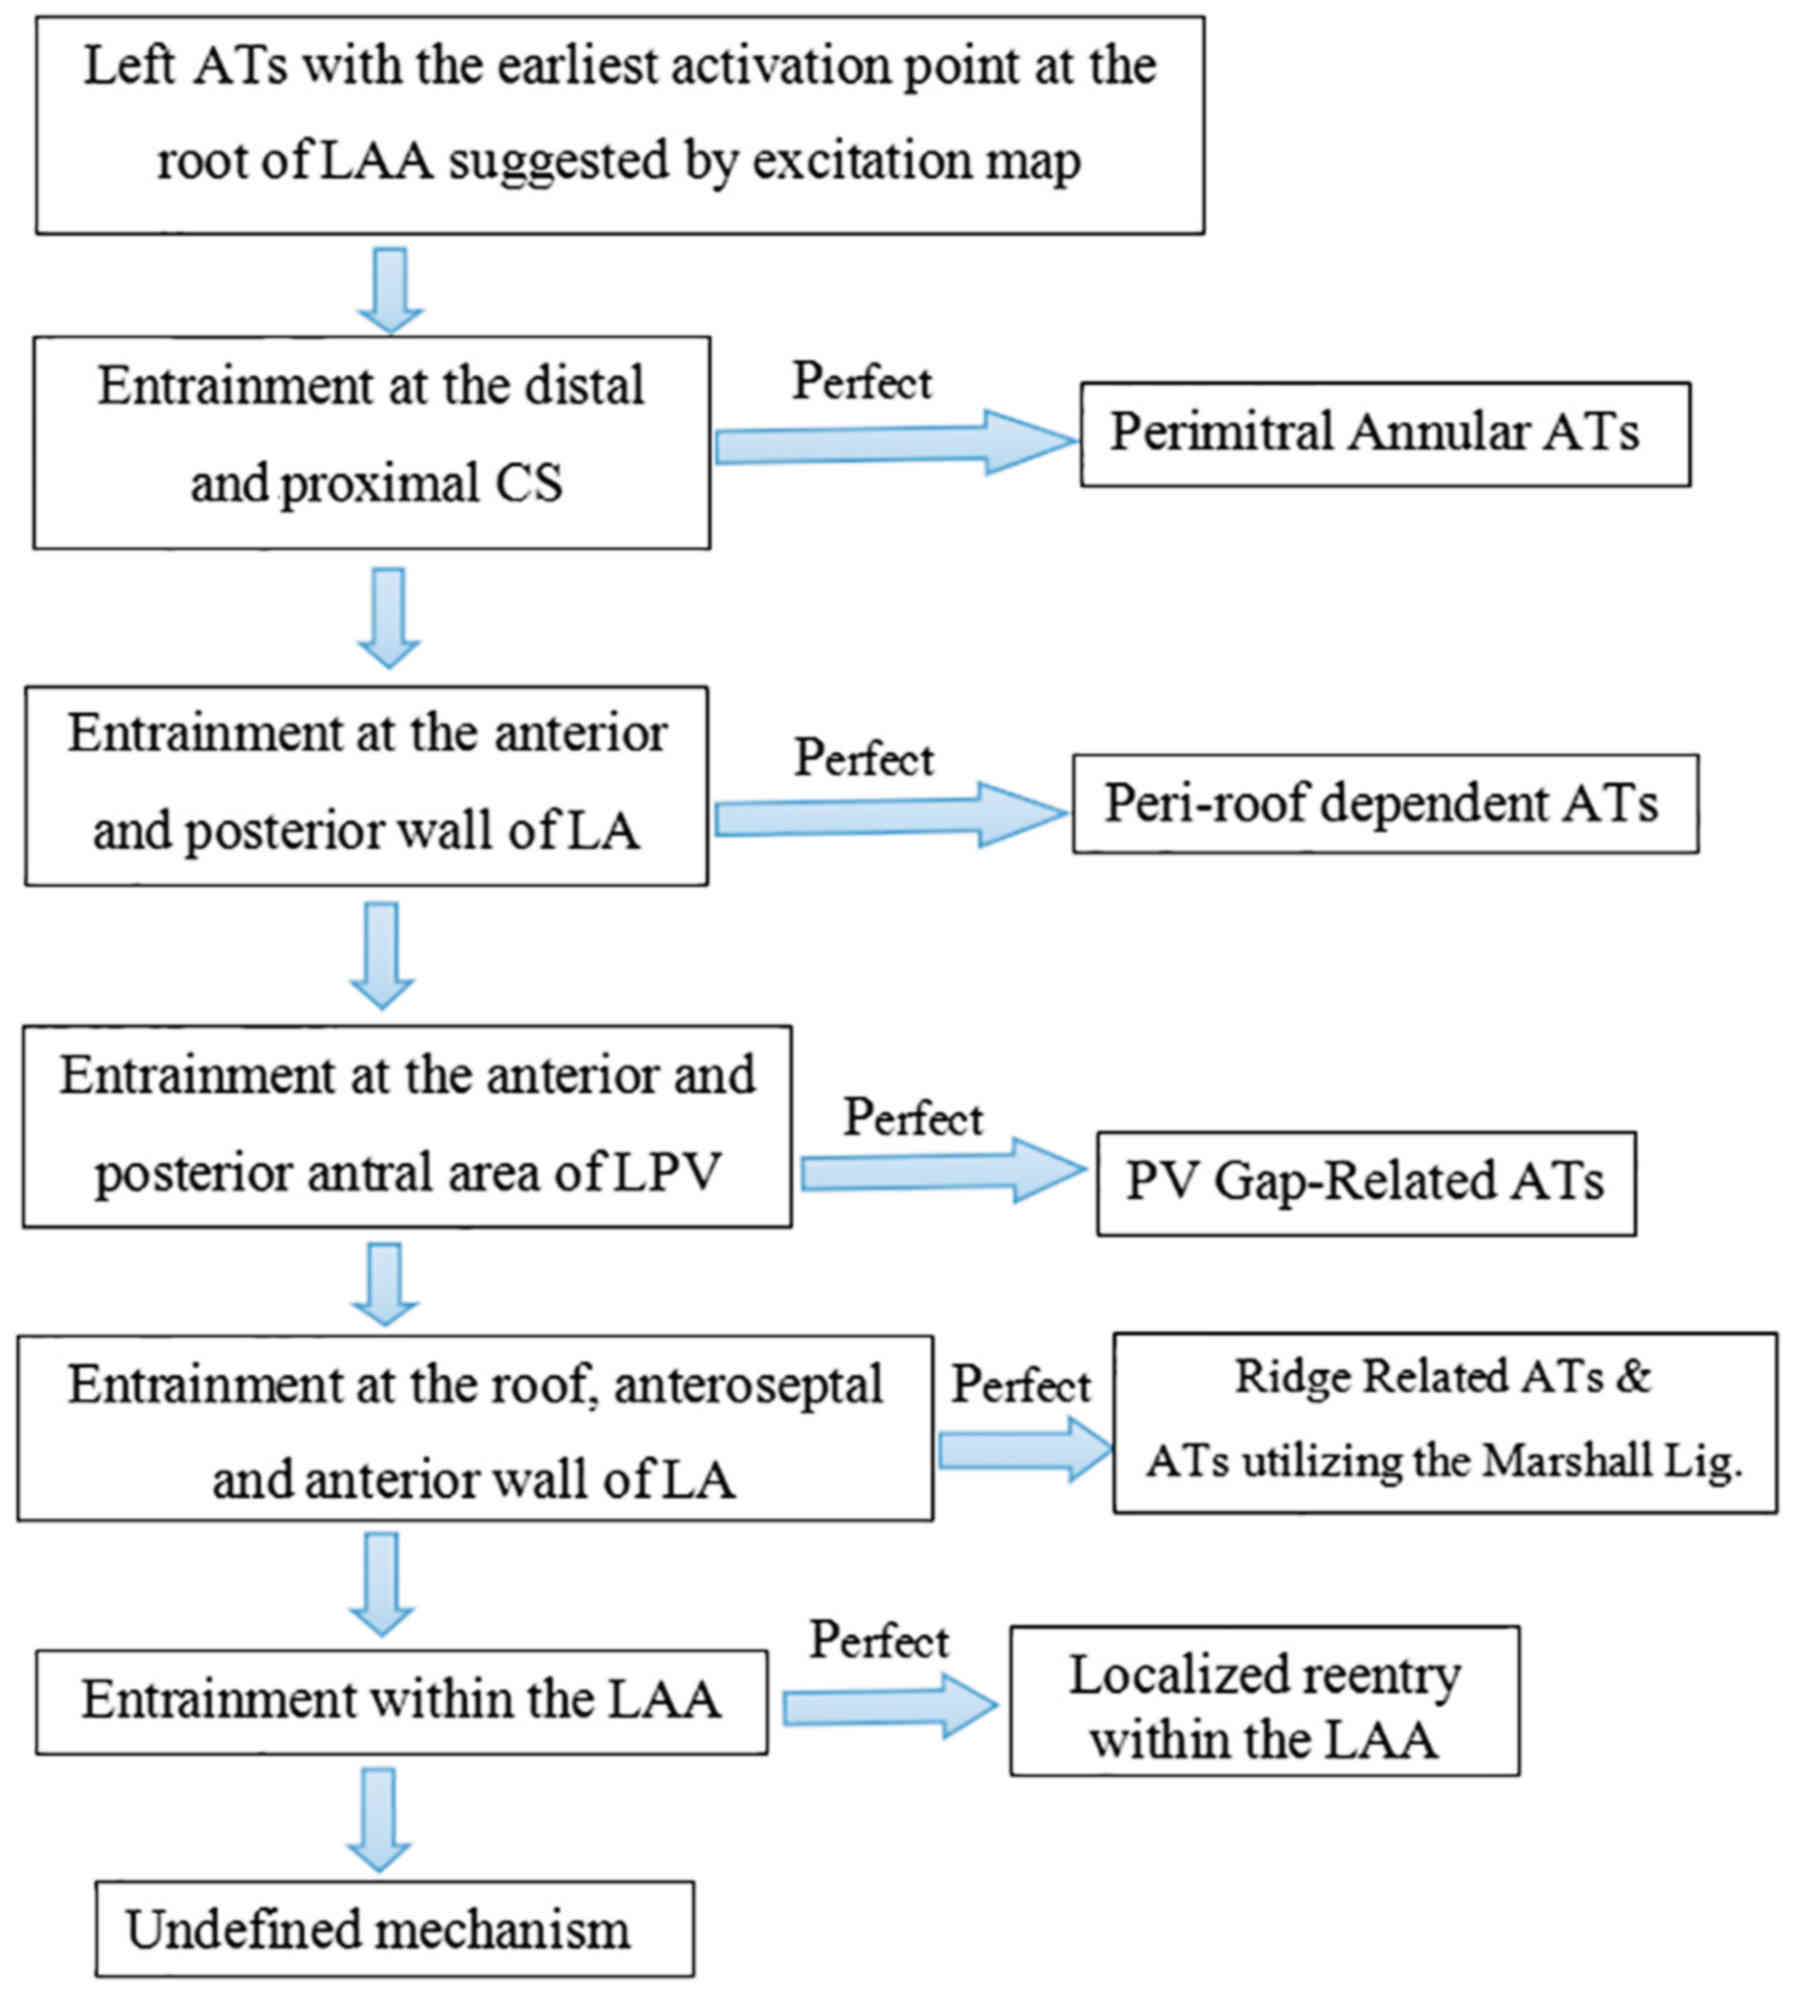 Atrial Fibrillation Concept Map.Sustained Localized Reentry Within The Left Atrial Appendage As A